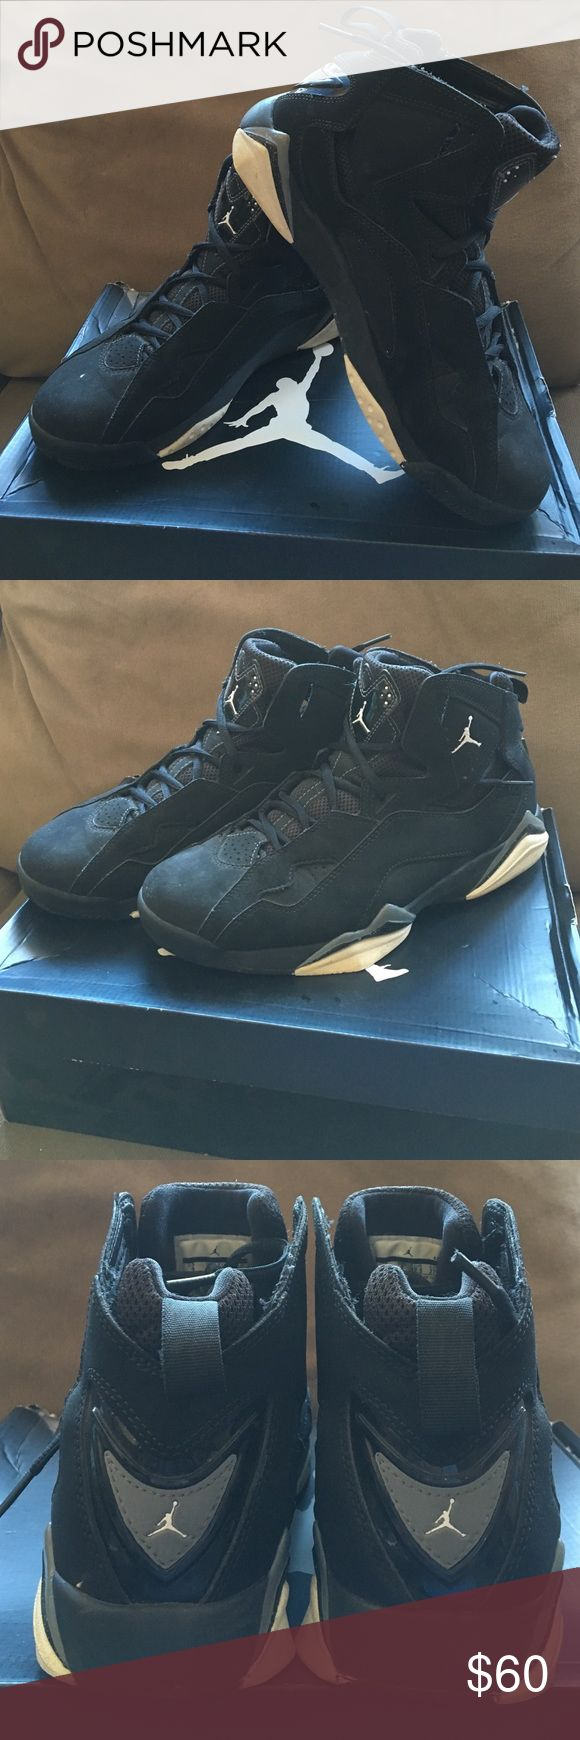 NIKE Jordan True Flights Black/White/Cool Grey Nike Jordan True Flight sneakers. Size 9 in MENS. Good condition: 8.5/10.  Will be washed before shipping. Nike Shoes Sneakers